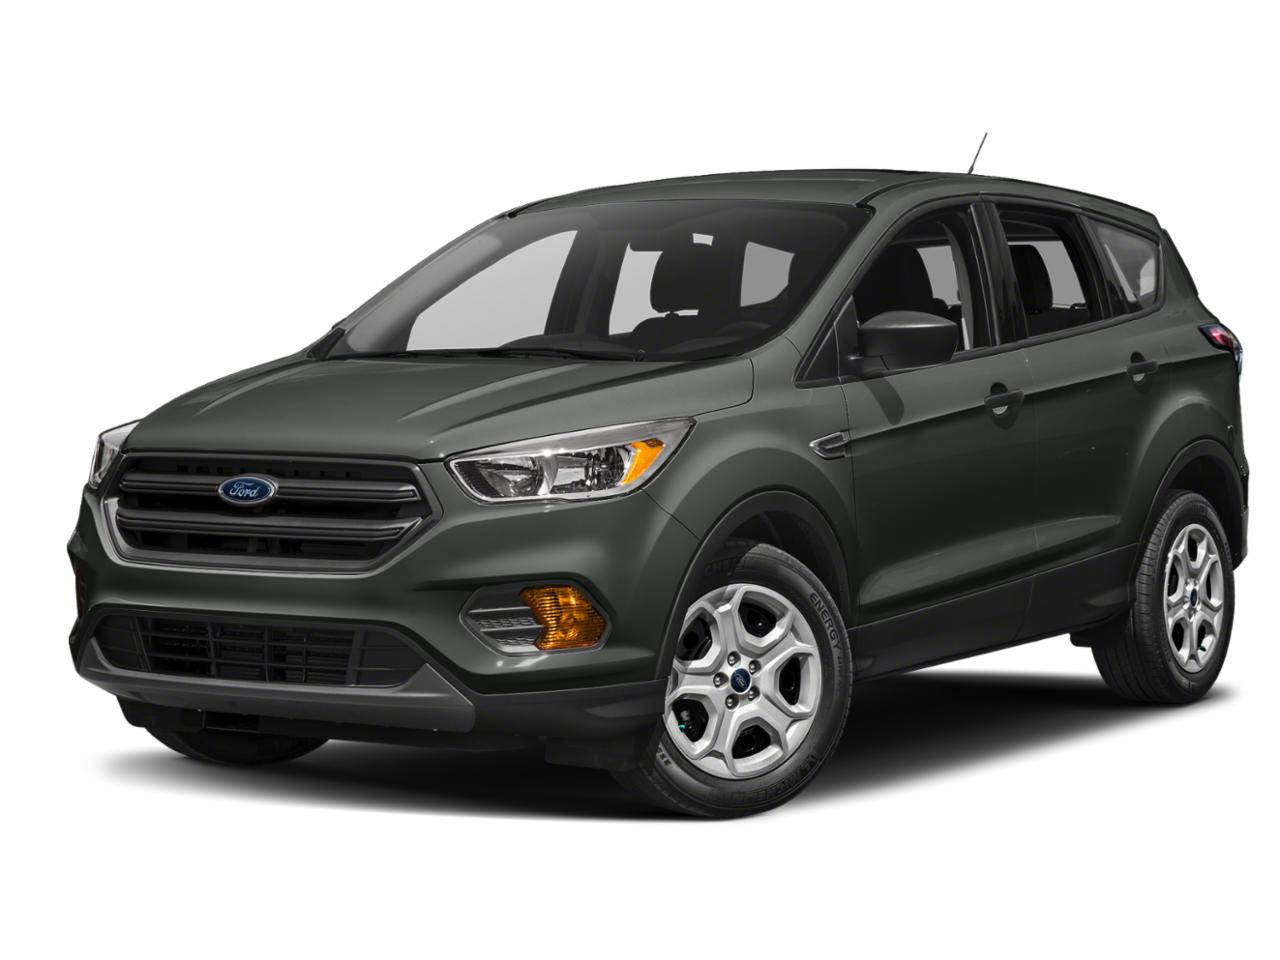 2018 Ford Escape Vehicle Photo in Tulsa, OK 74133